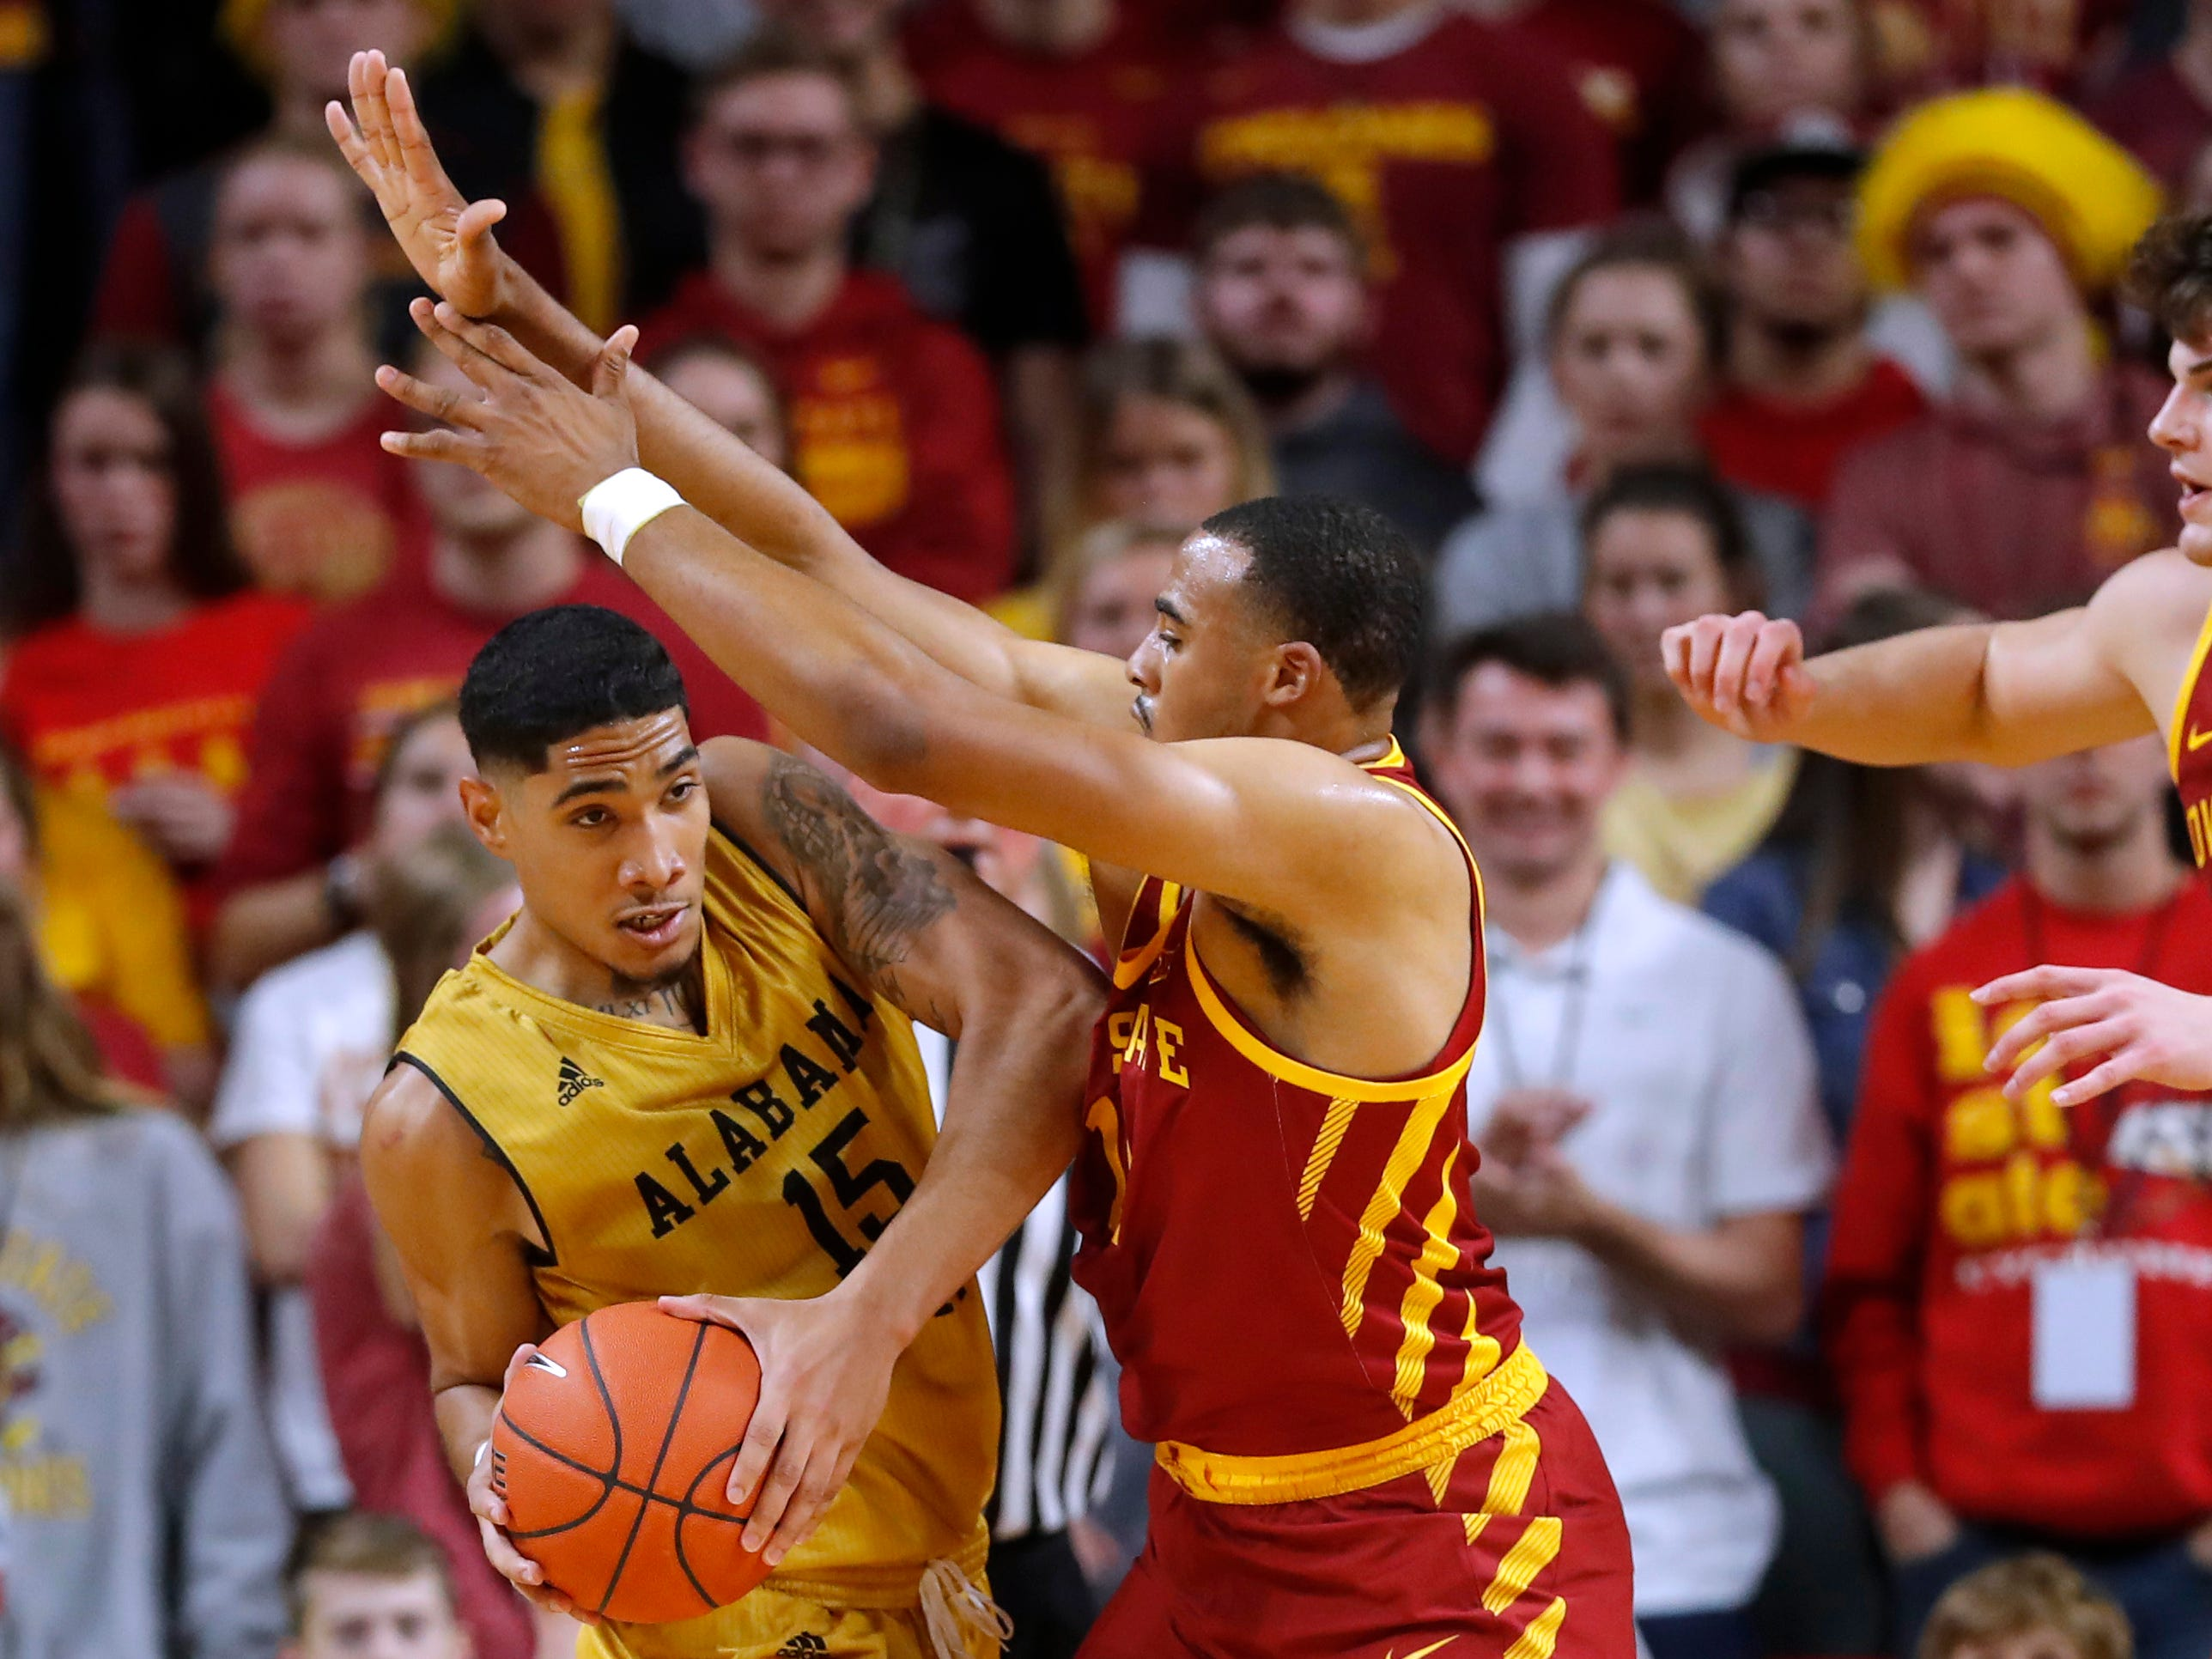 Alabama State forward Fausto Pichardo, left, looks to pass around Iowa State guard Talen Horton-Tucker in Iowa State's season opener Tuesday.